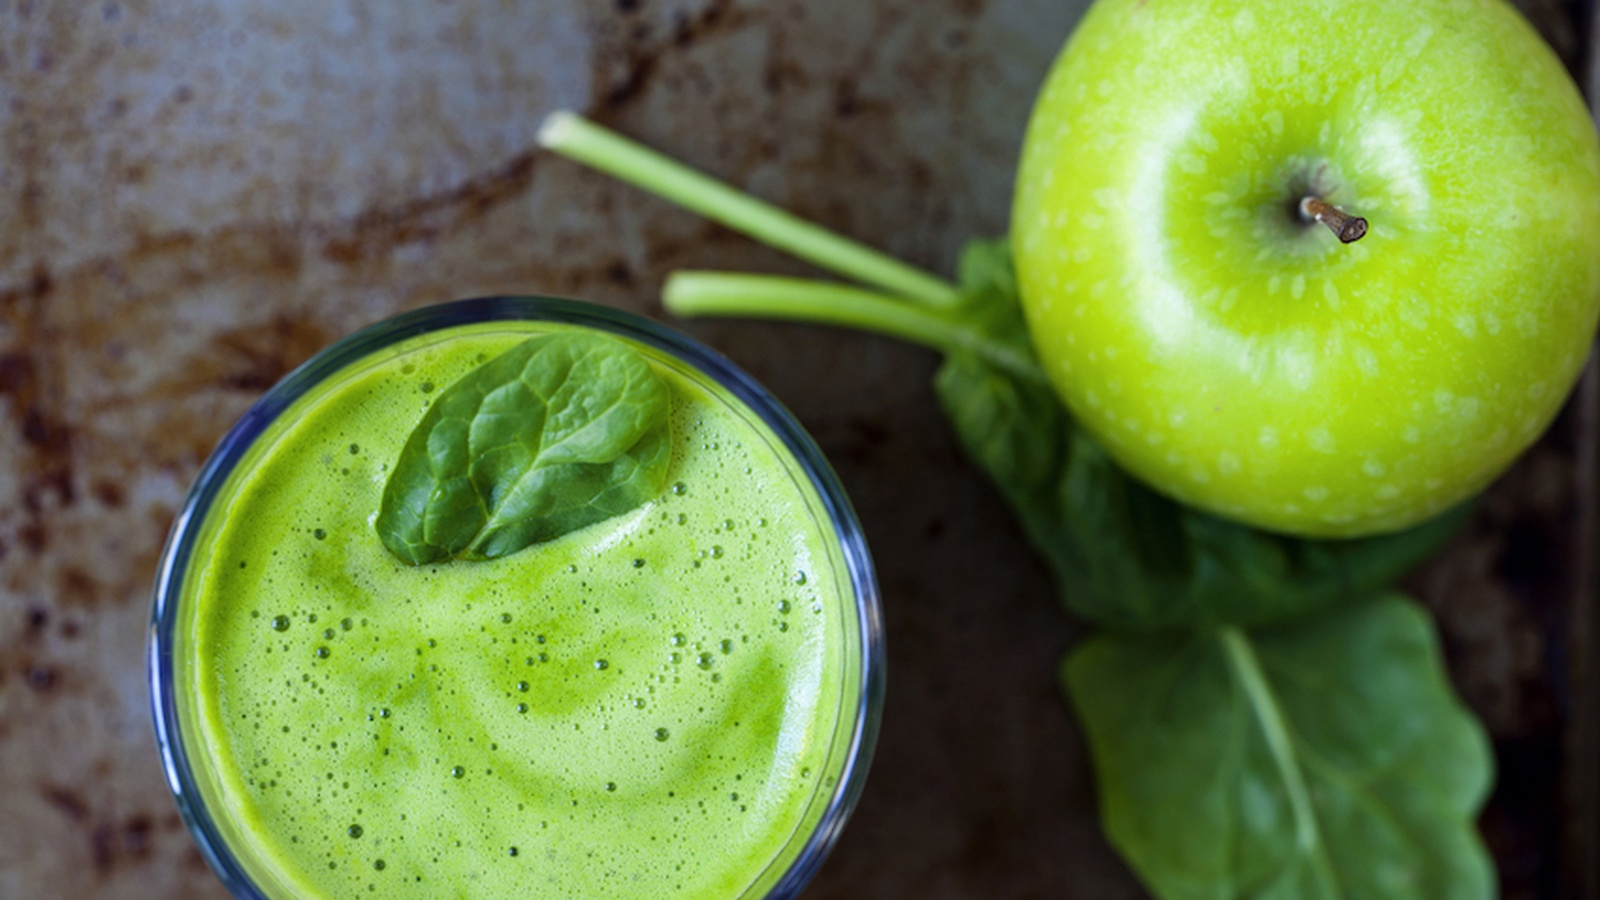 How To Make a Tasty Green Juice